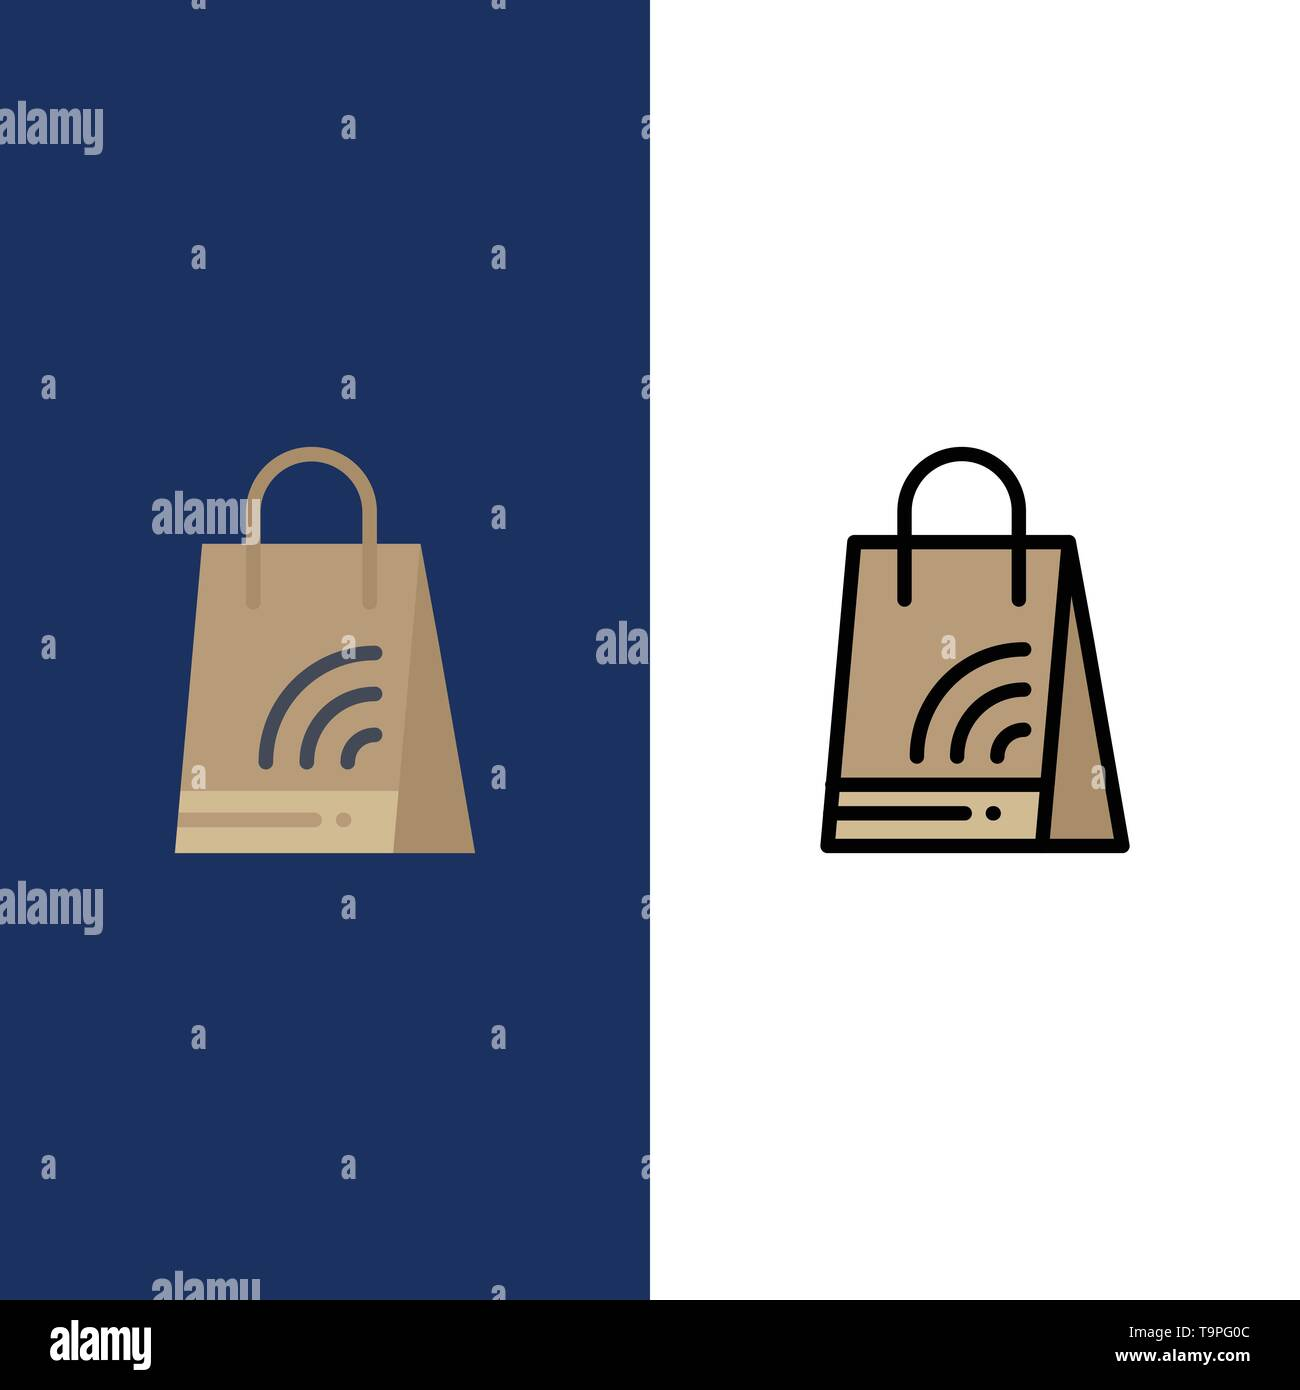 Bag, Handbag, Wifi, Shopping  Icons. Flat and Line Filled Icon Set Vector Blue Background - Stock Image